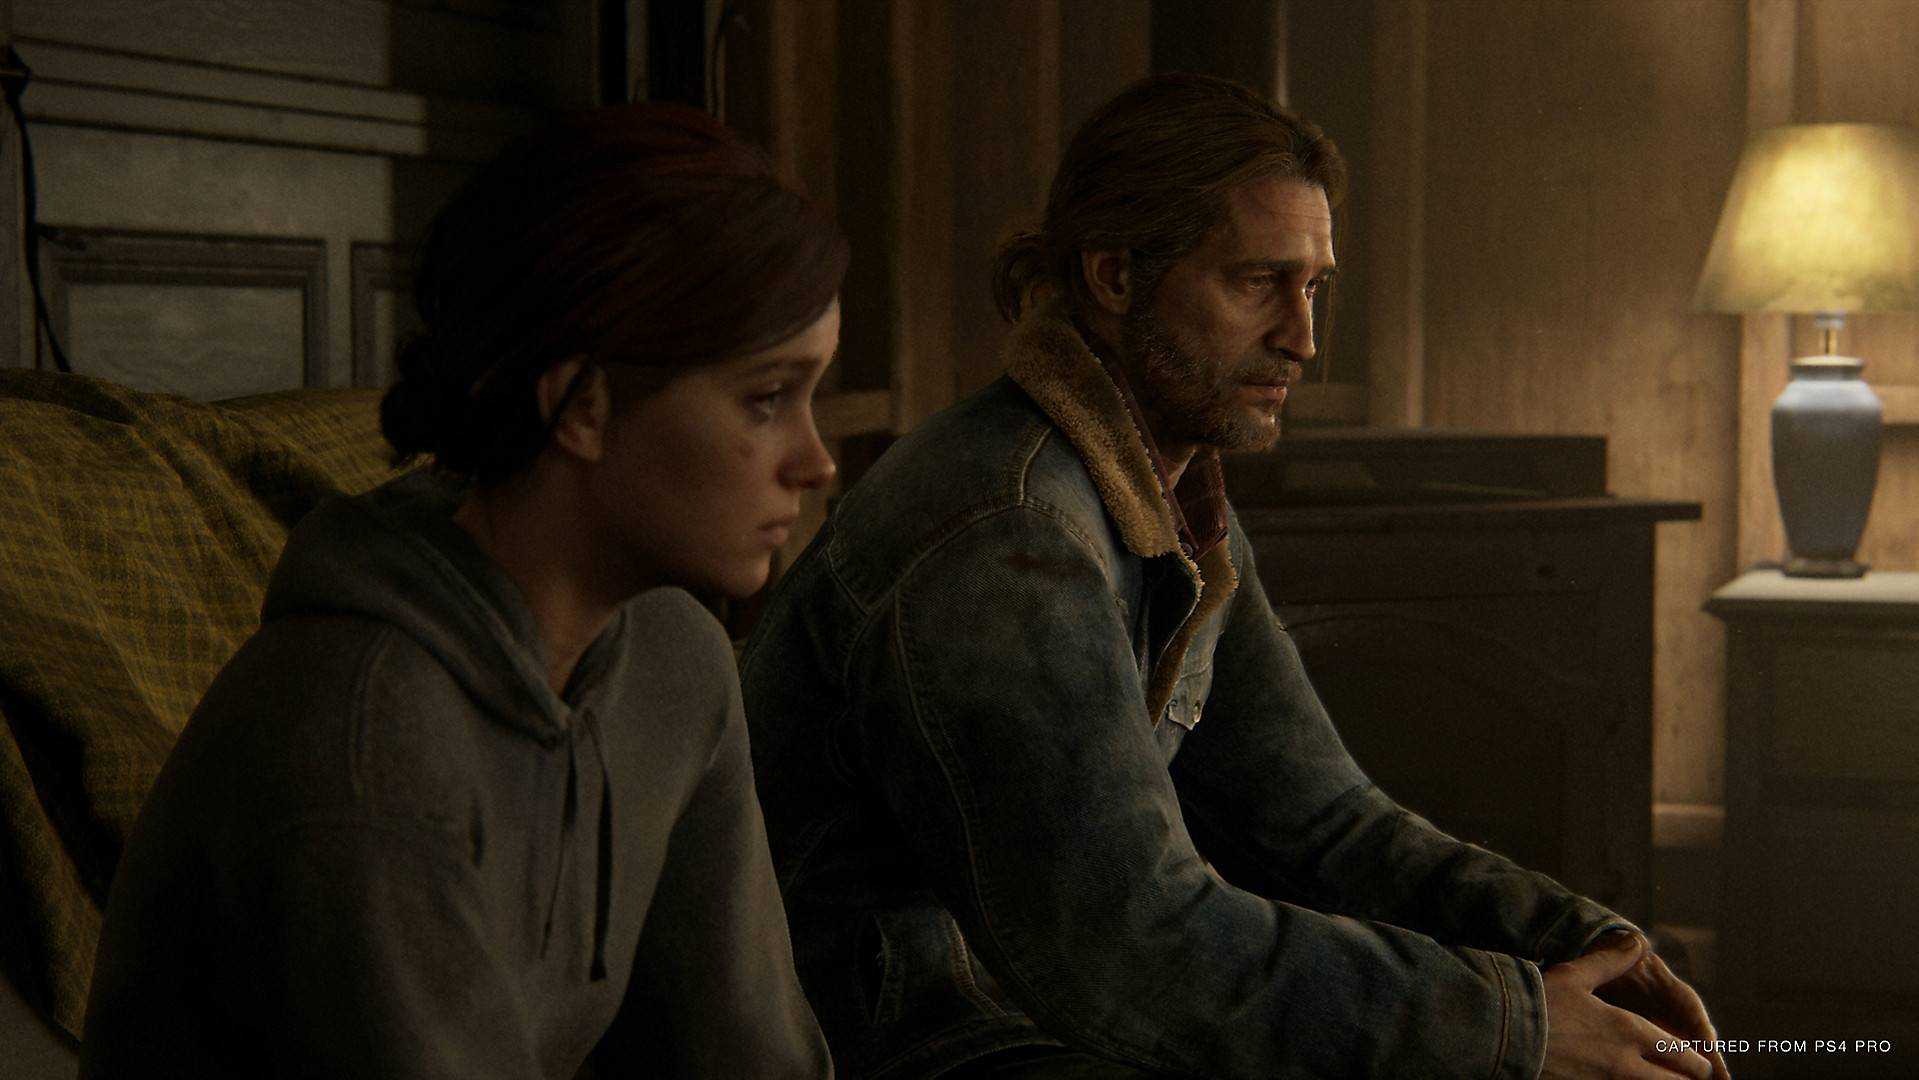 The Last of Us 2 The Last of Us Part 2 The Last of Us Part II